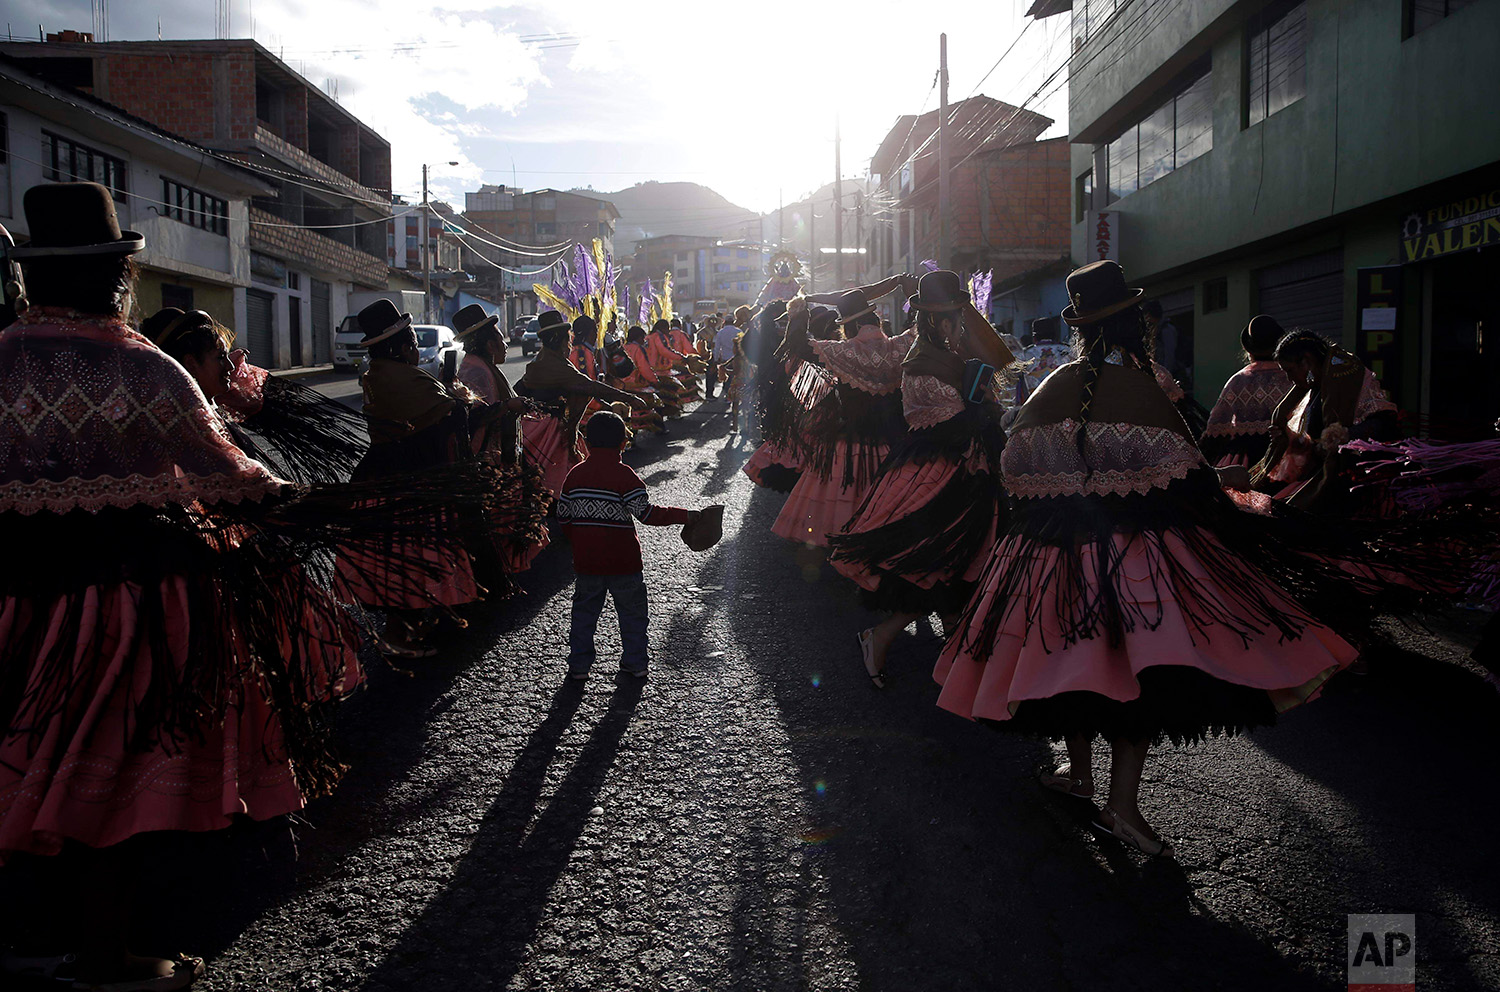 """Dance troupes perform the """"Morenada"""" or Dance of the Black Slaves, during celebrations honoring Our Lady of Copacabana, in Cuzco, Peru, Aug. 5, 2018. The traditional Bolivian dance is comprised of a synergistic mix of African and Aymara influences. (AP Photo/Martin Mejia)"""